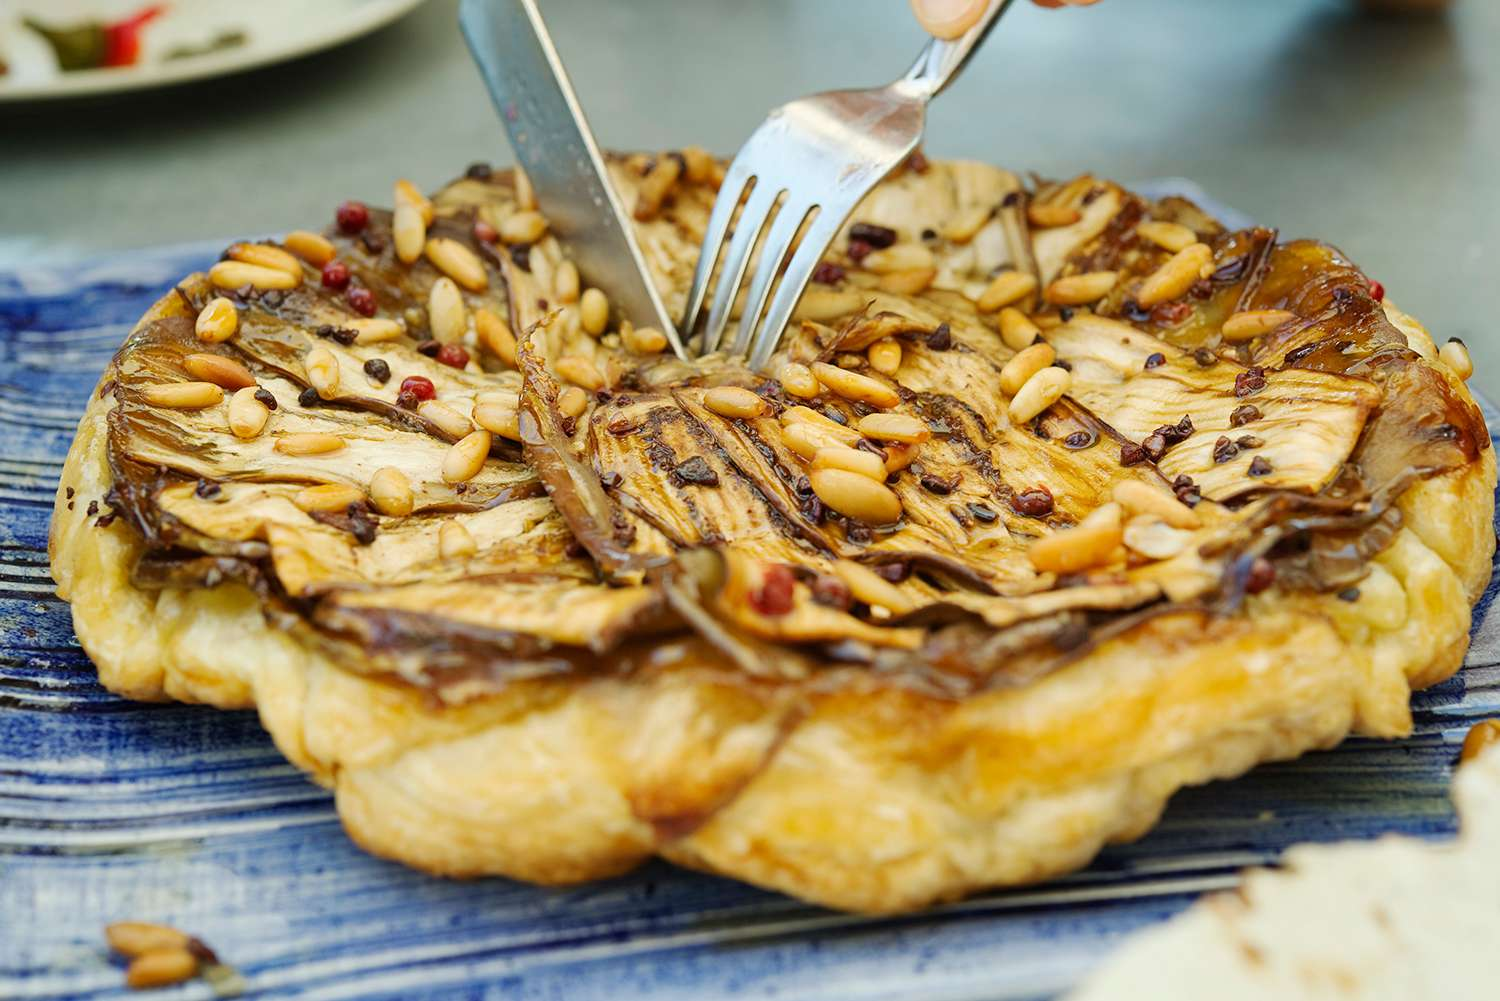 Tatin eggplant with pine nuts and groats cocoa